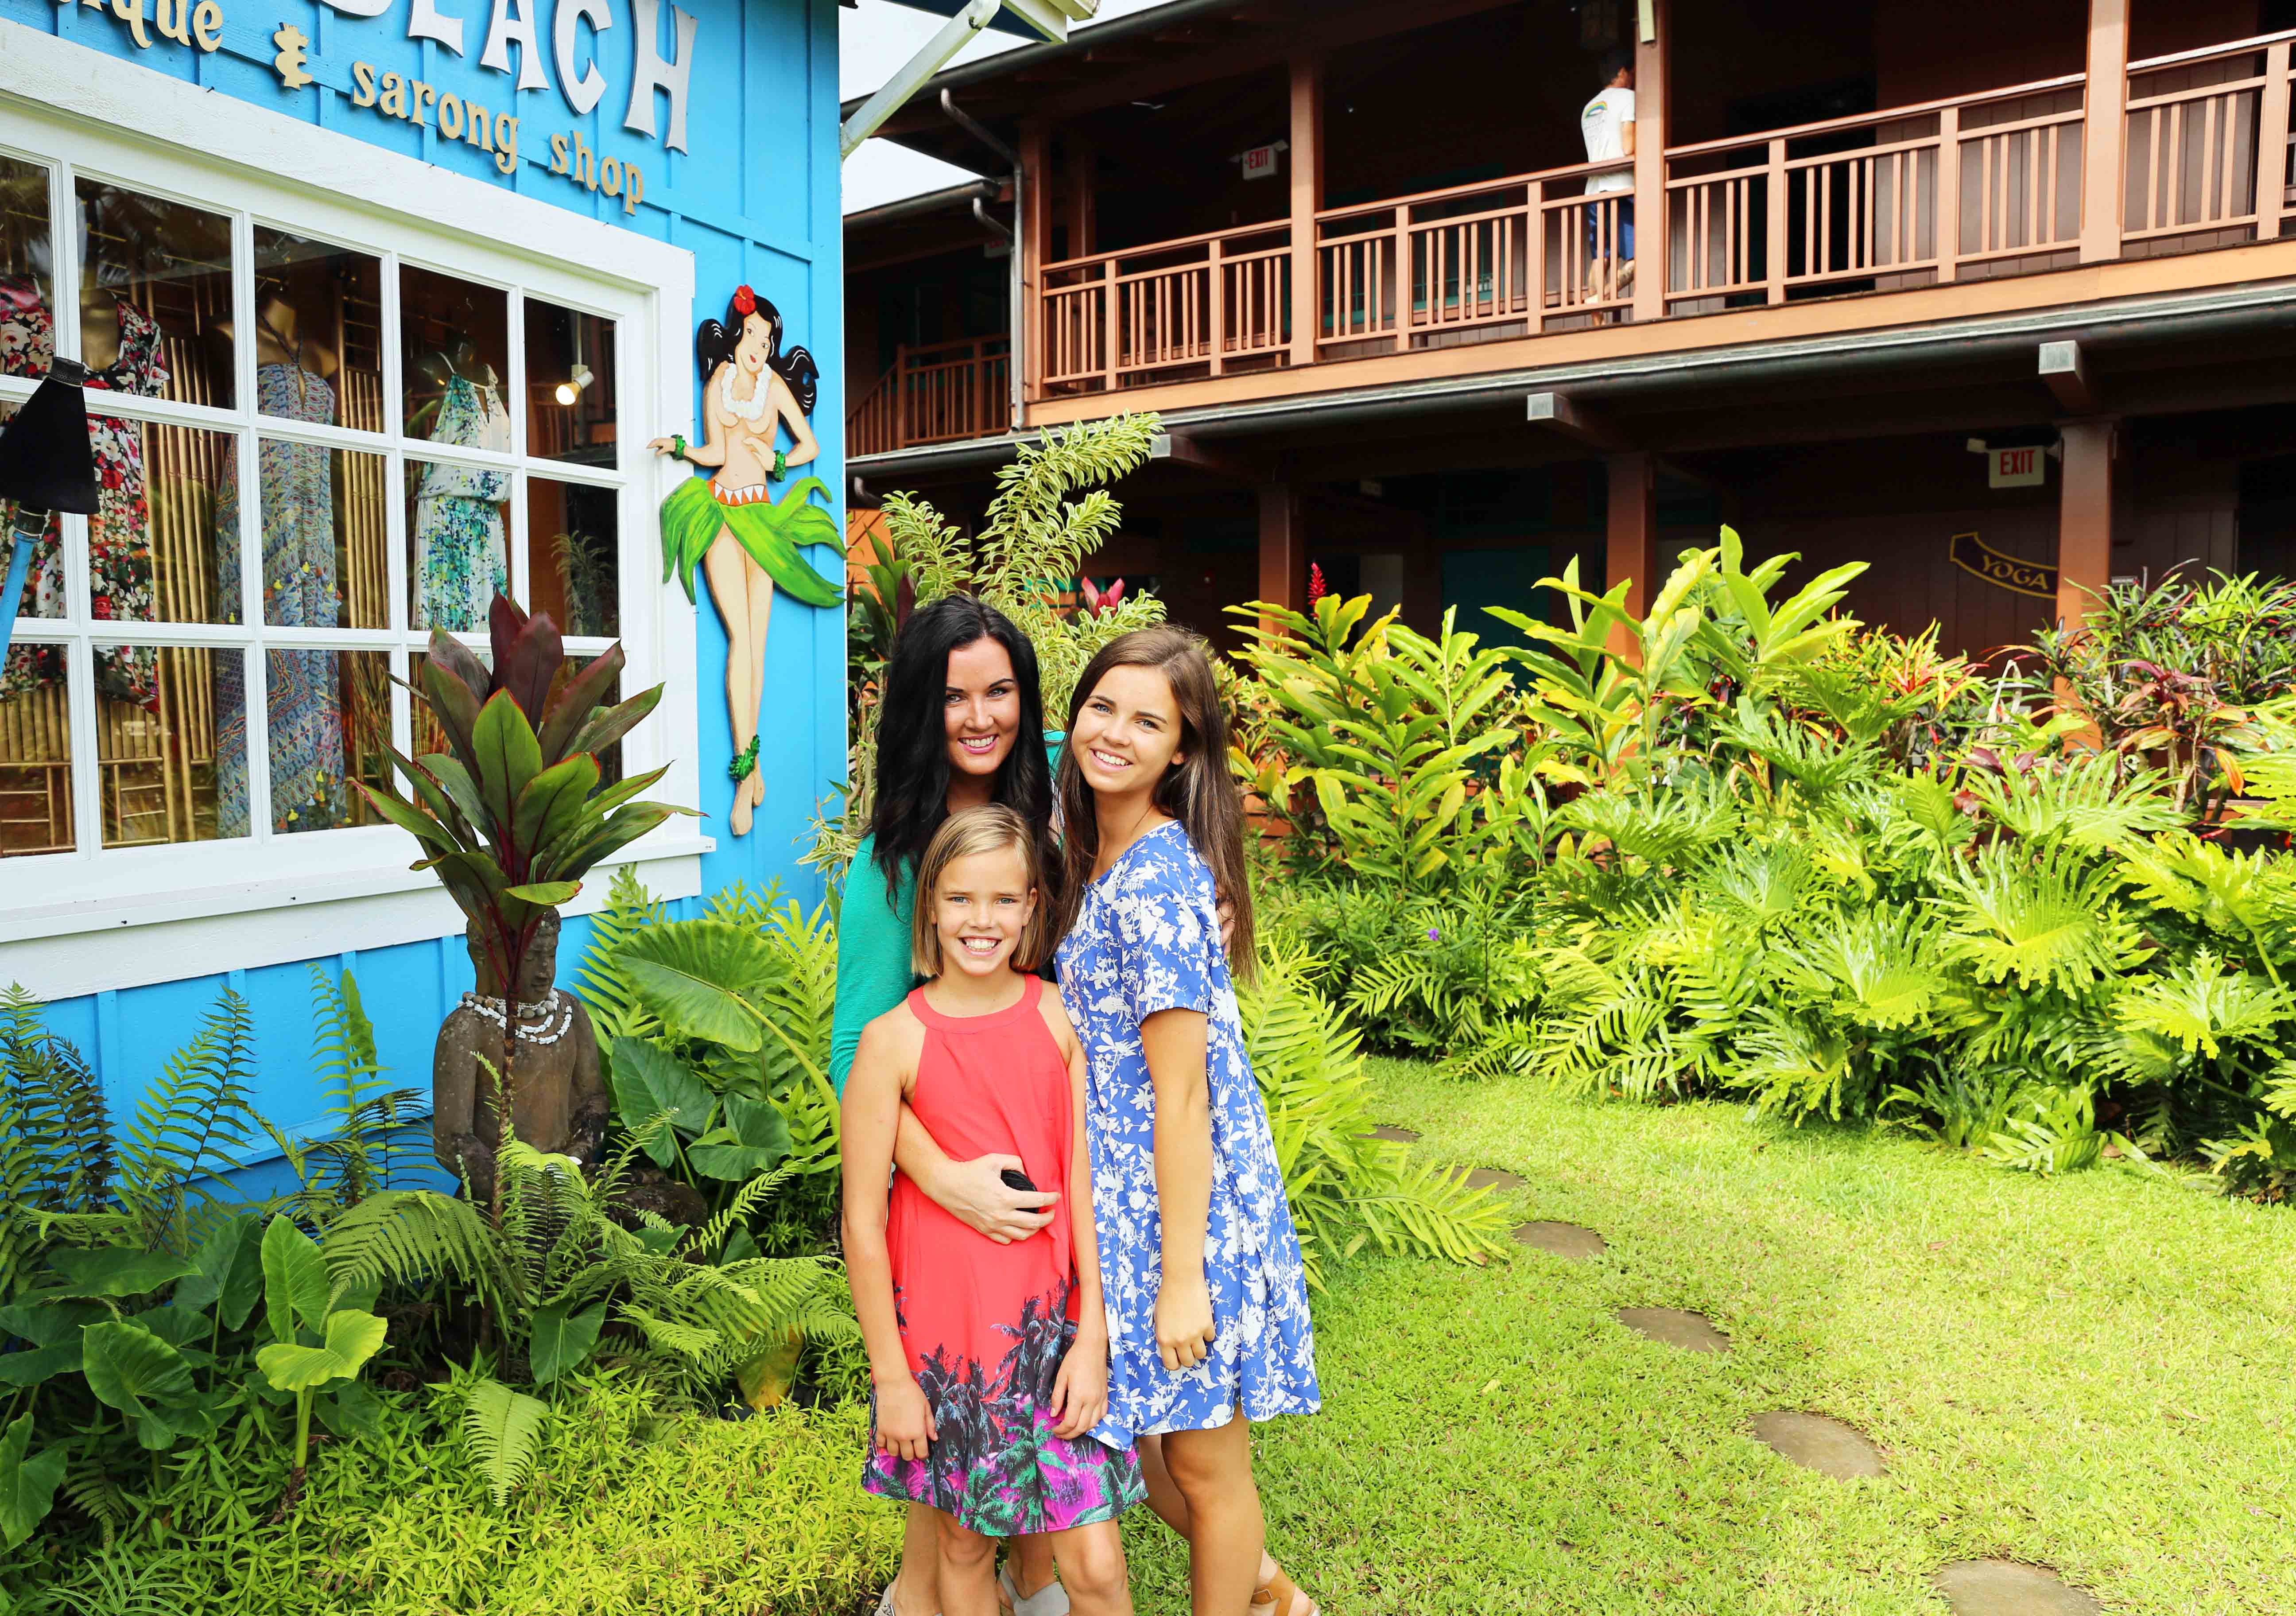 Kauai Hawaii Travel Guide. Shopping in Hanalei Hawaii